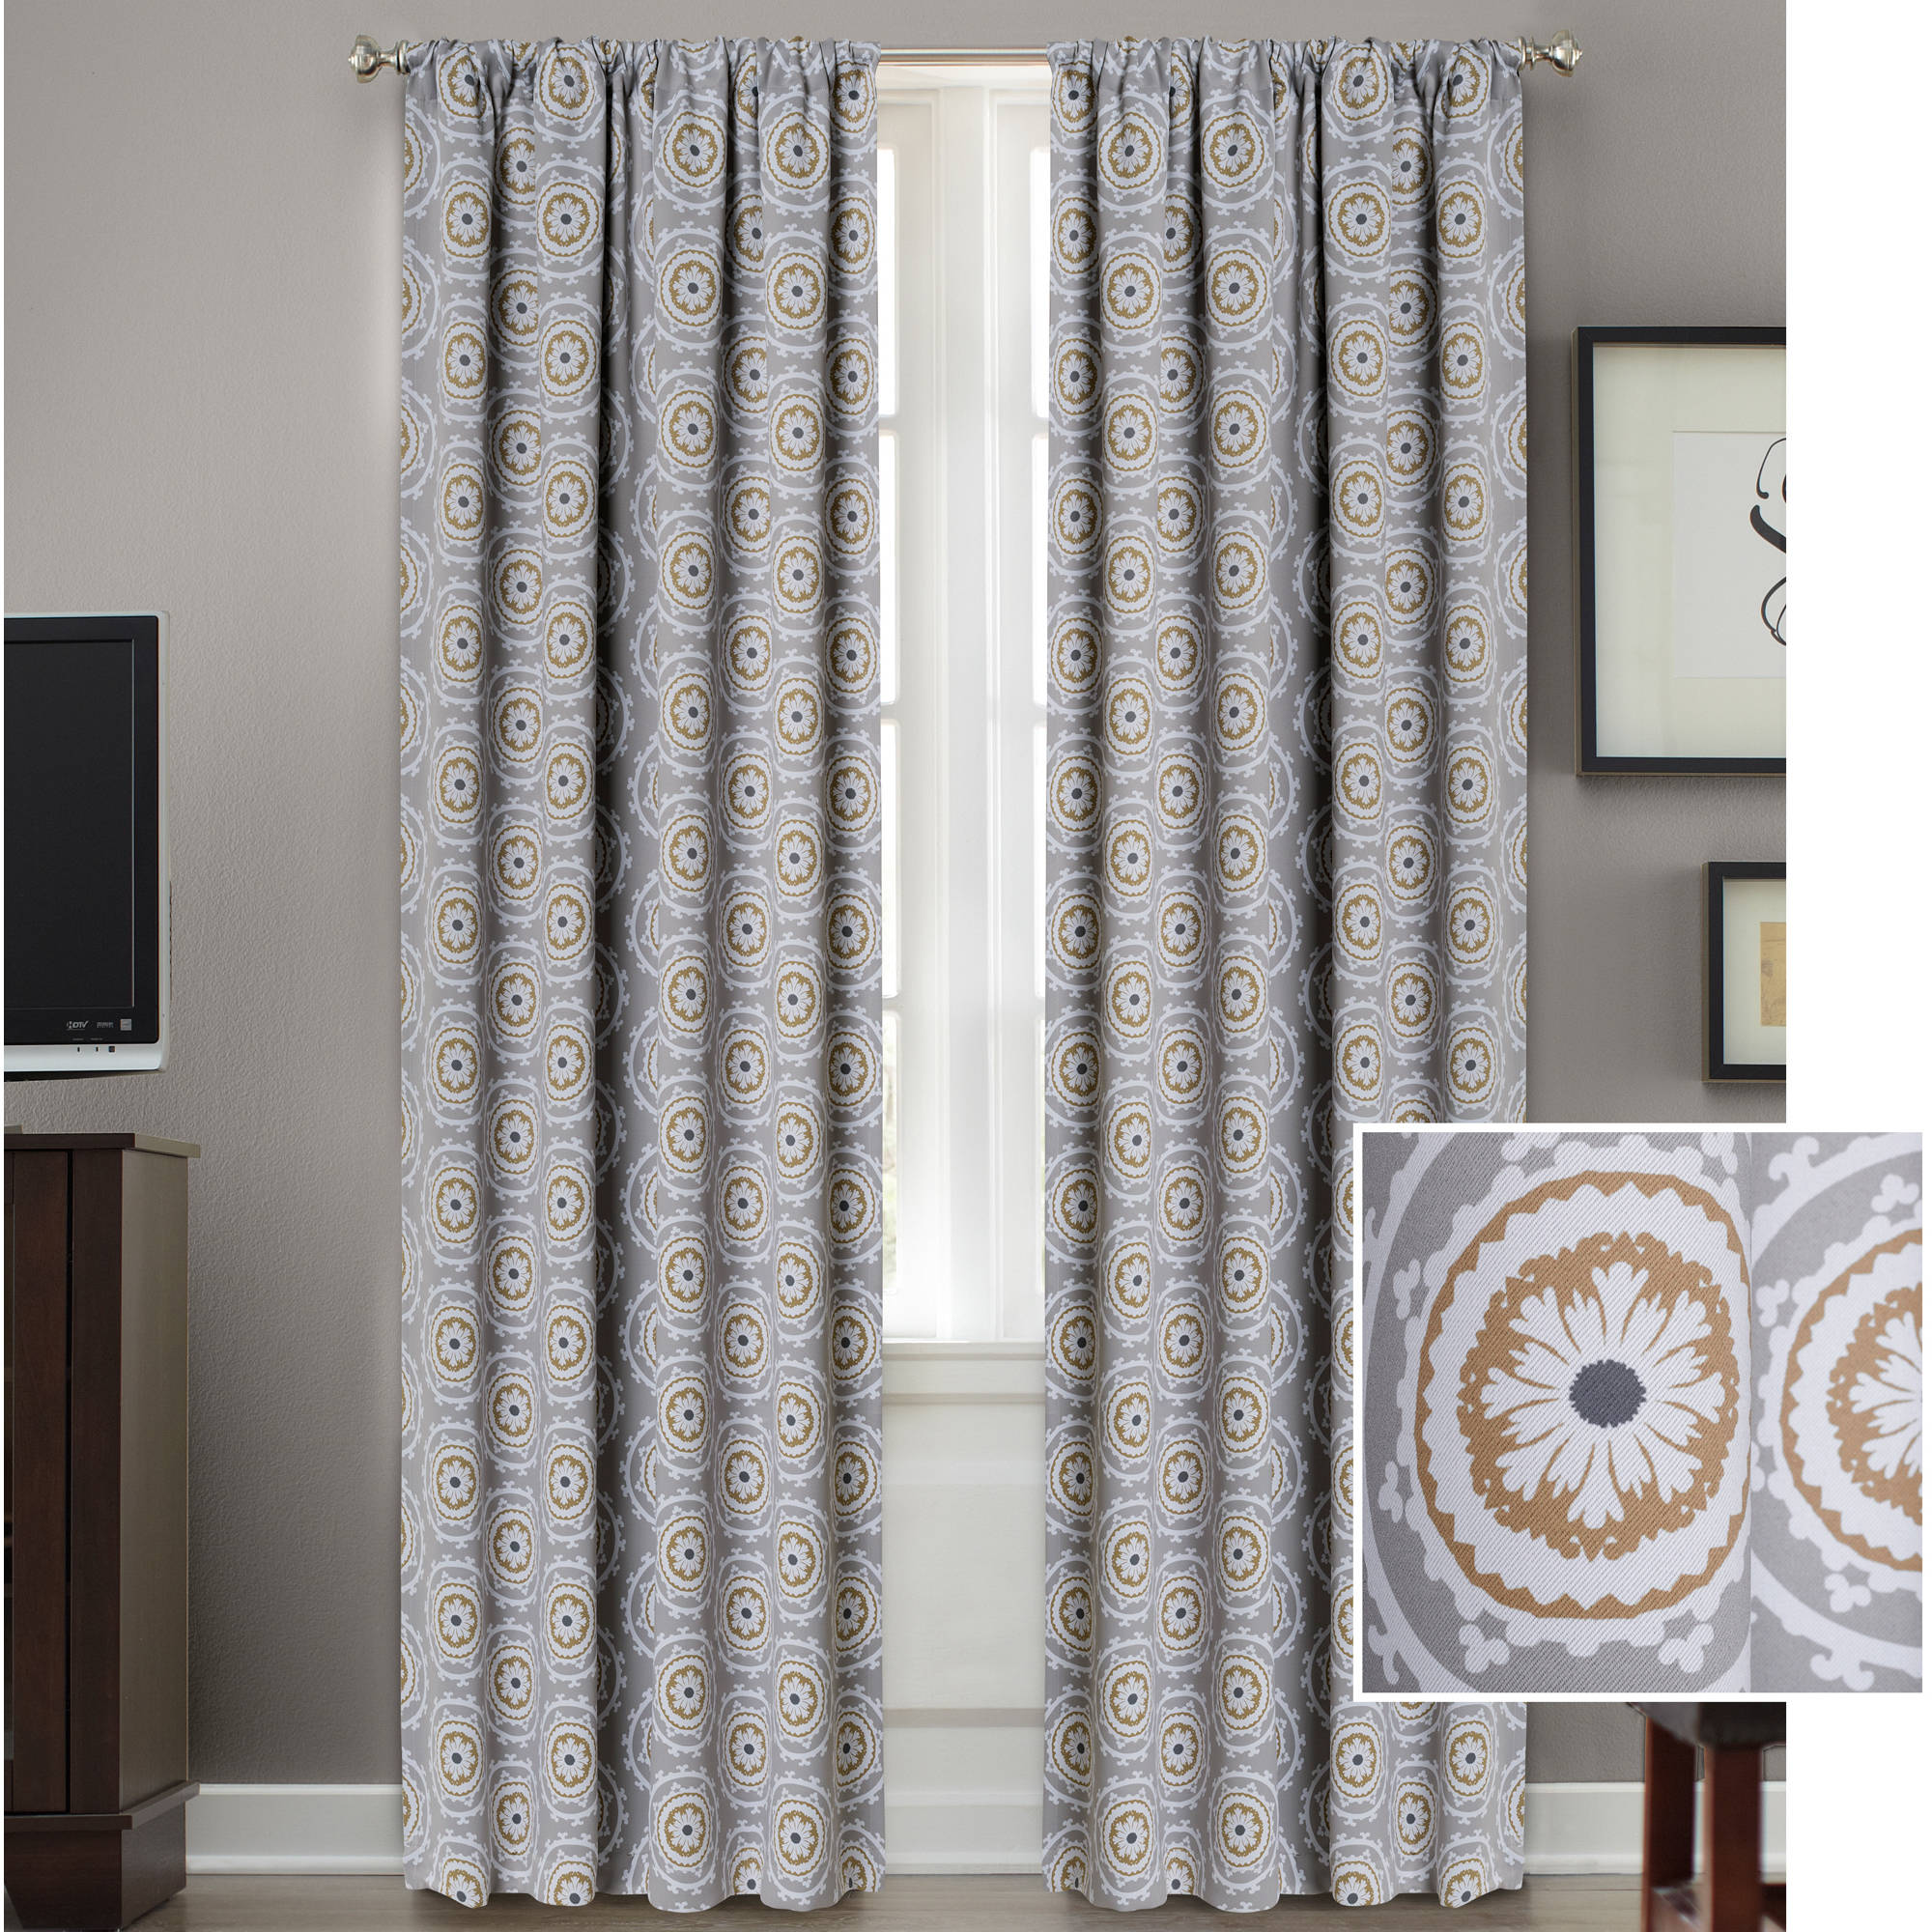 Better Homes and Gardens Medallion Room Darkening Curtain Panel by Colordrift LLC